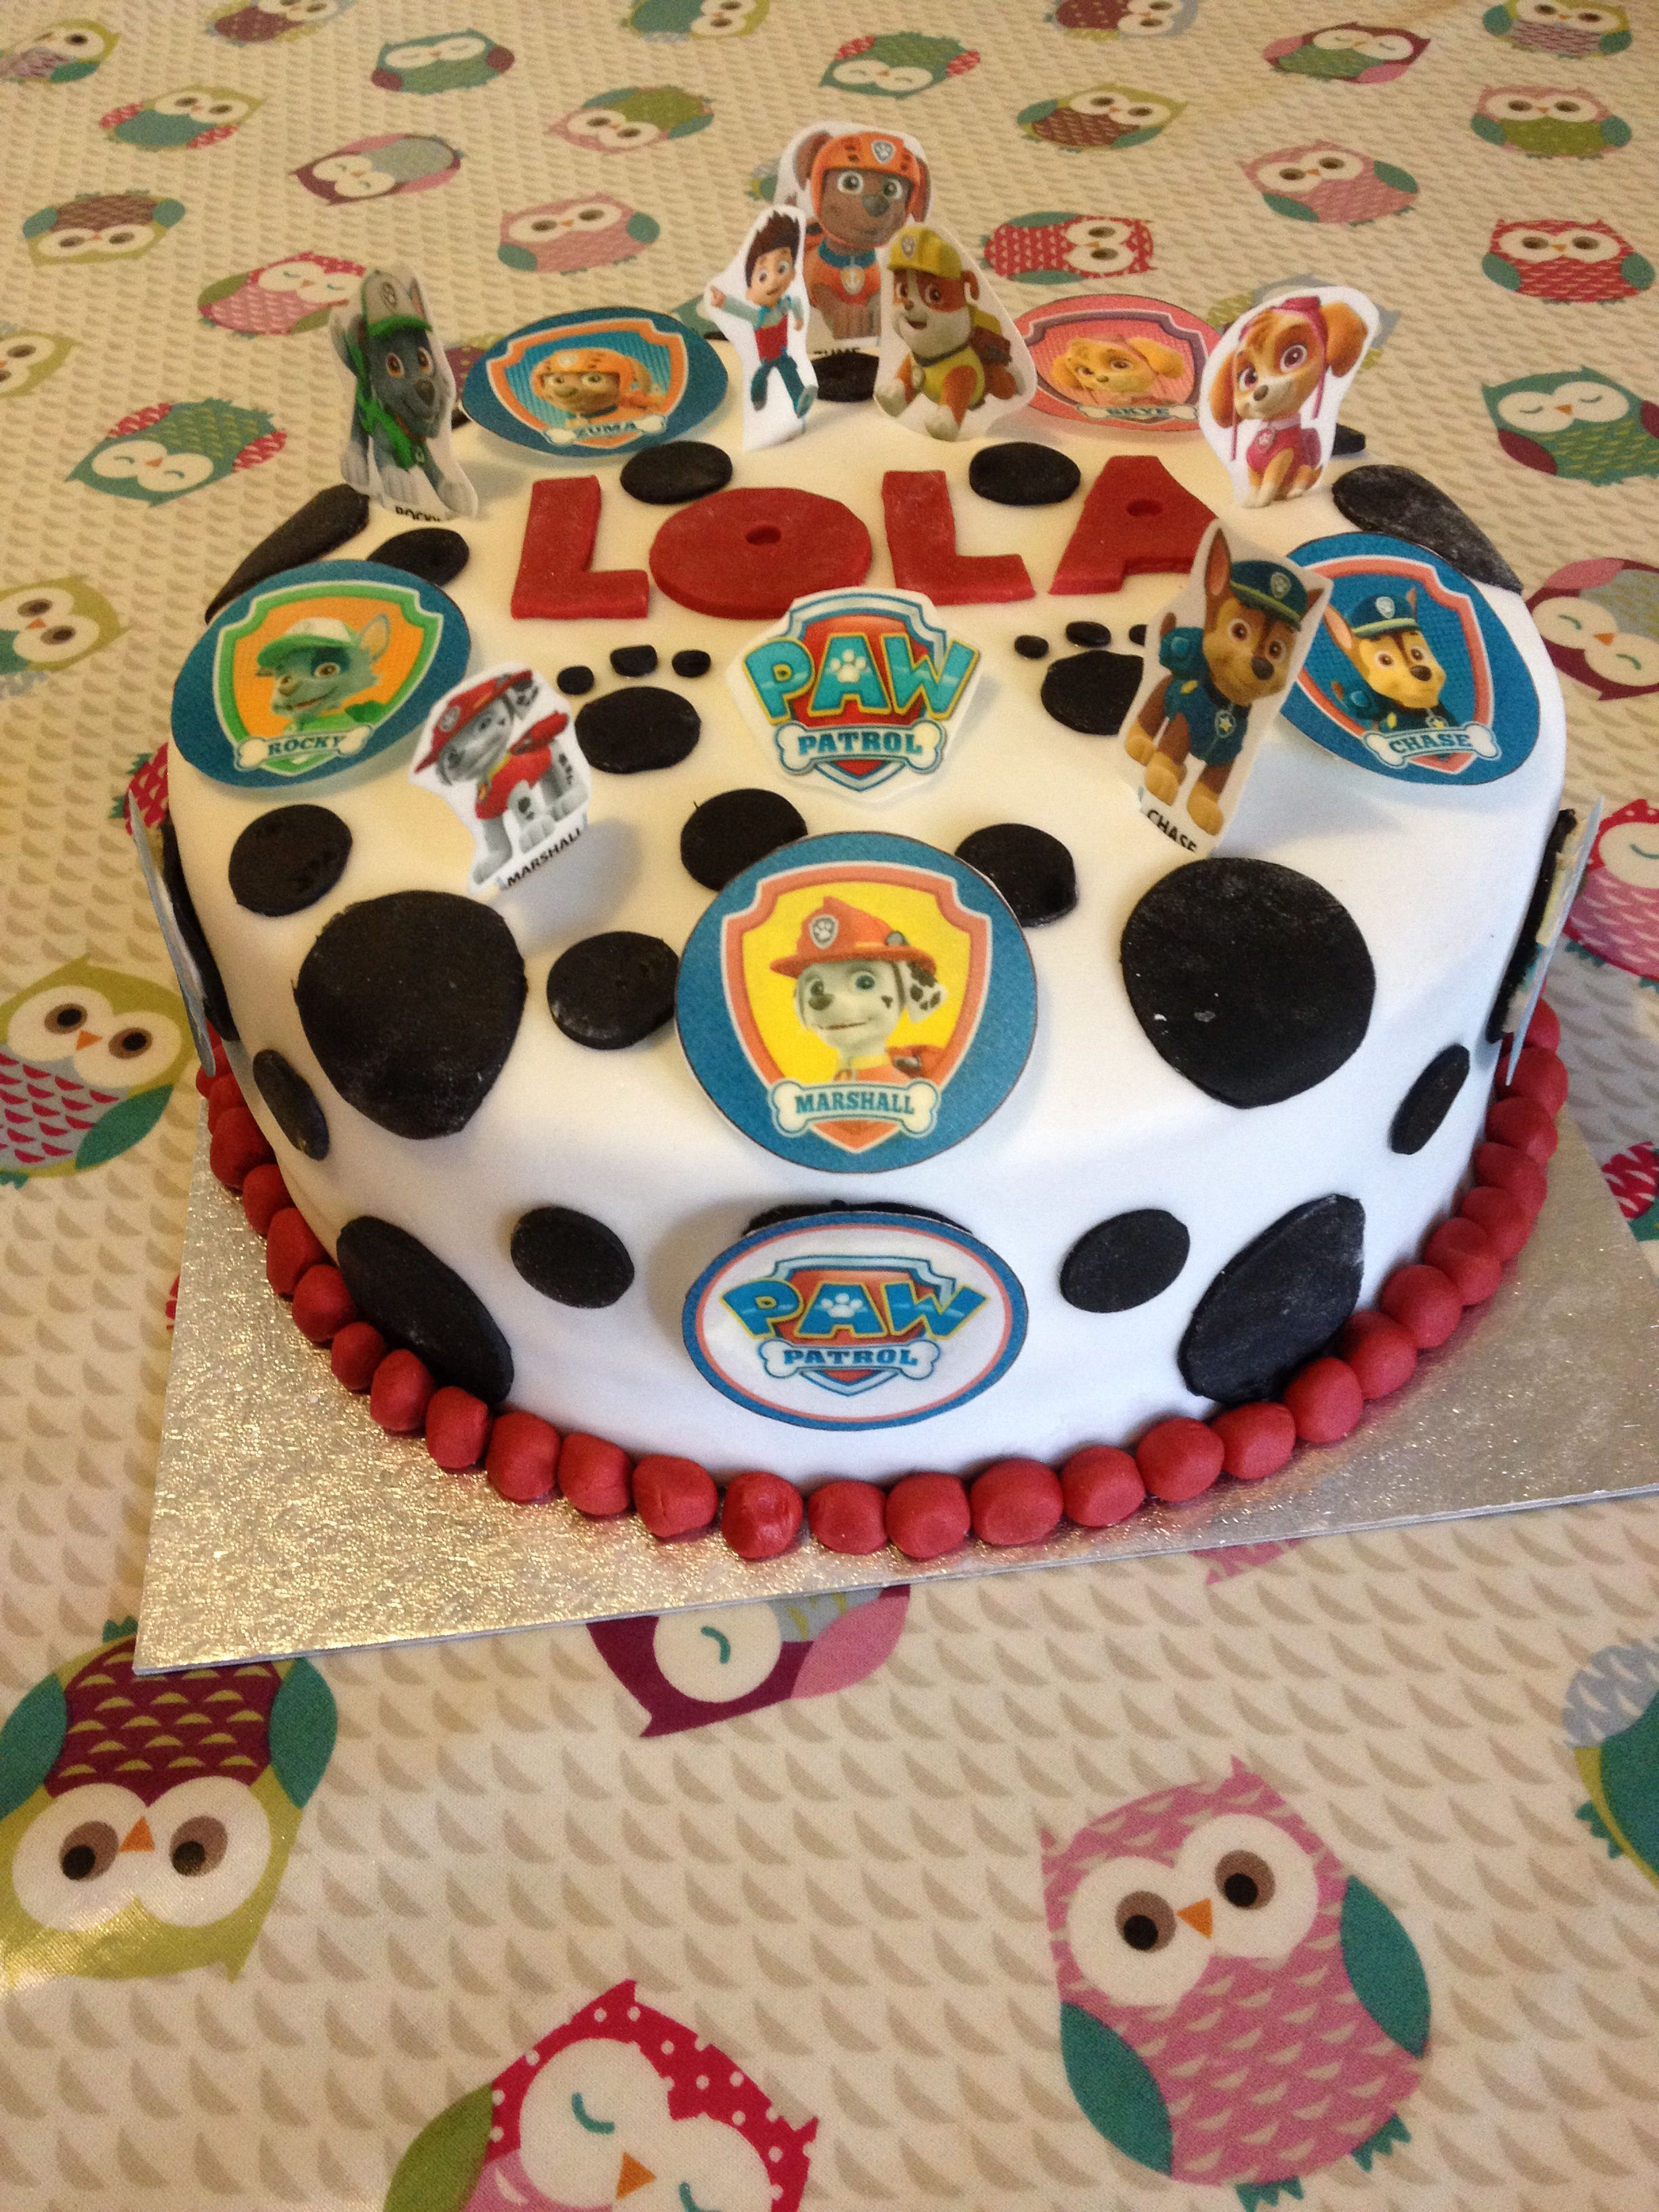 Paw Patrol Images For Cake : Paw patrol cake Future Birthday Parties Pinterest